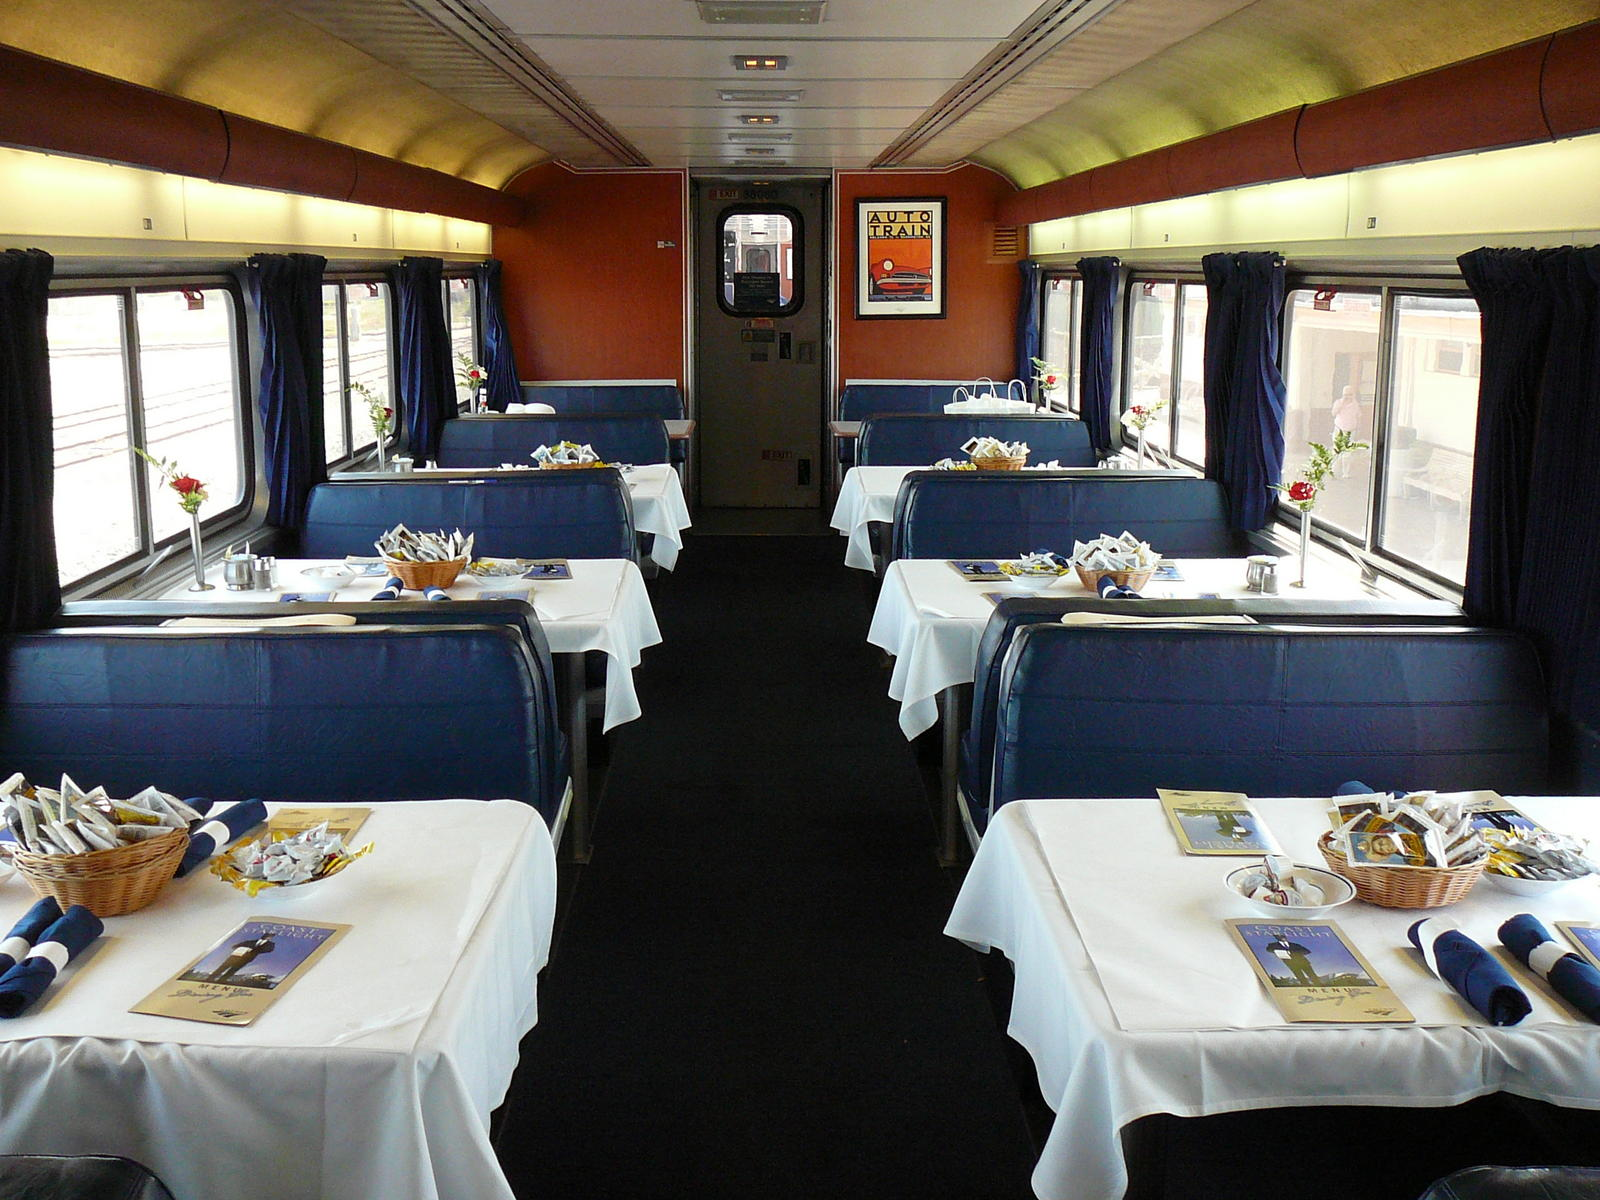 Two Bedroom Suites In San Francisco Amtrak Ing It South Bay Riders